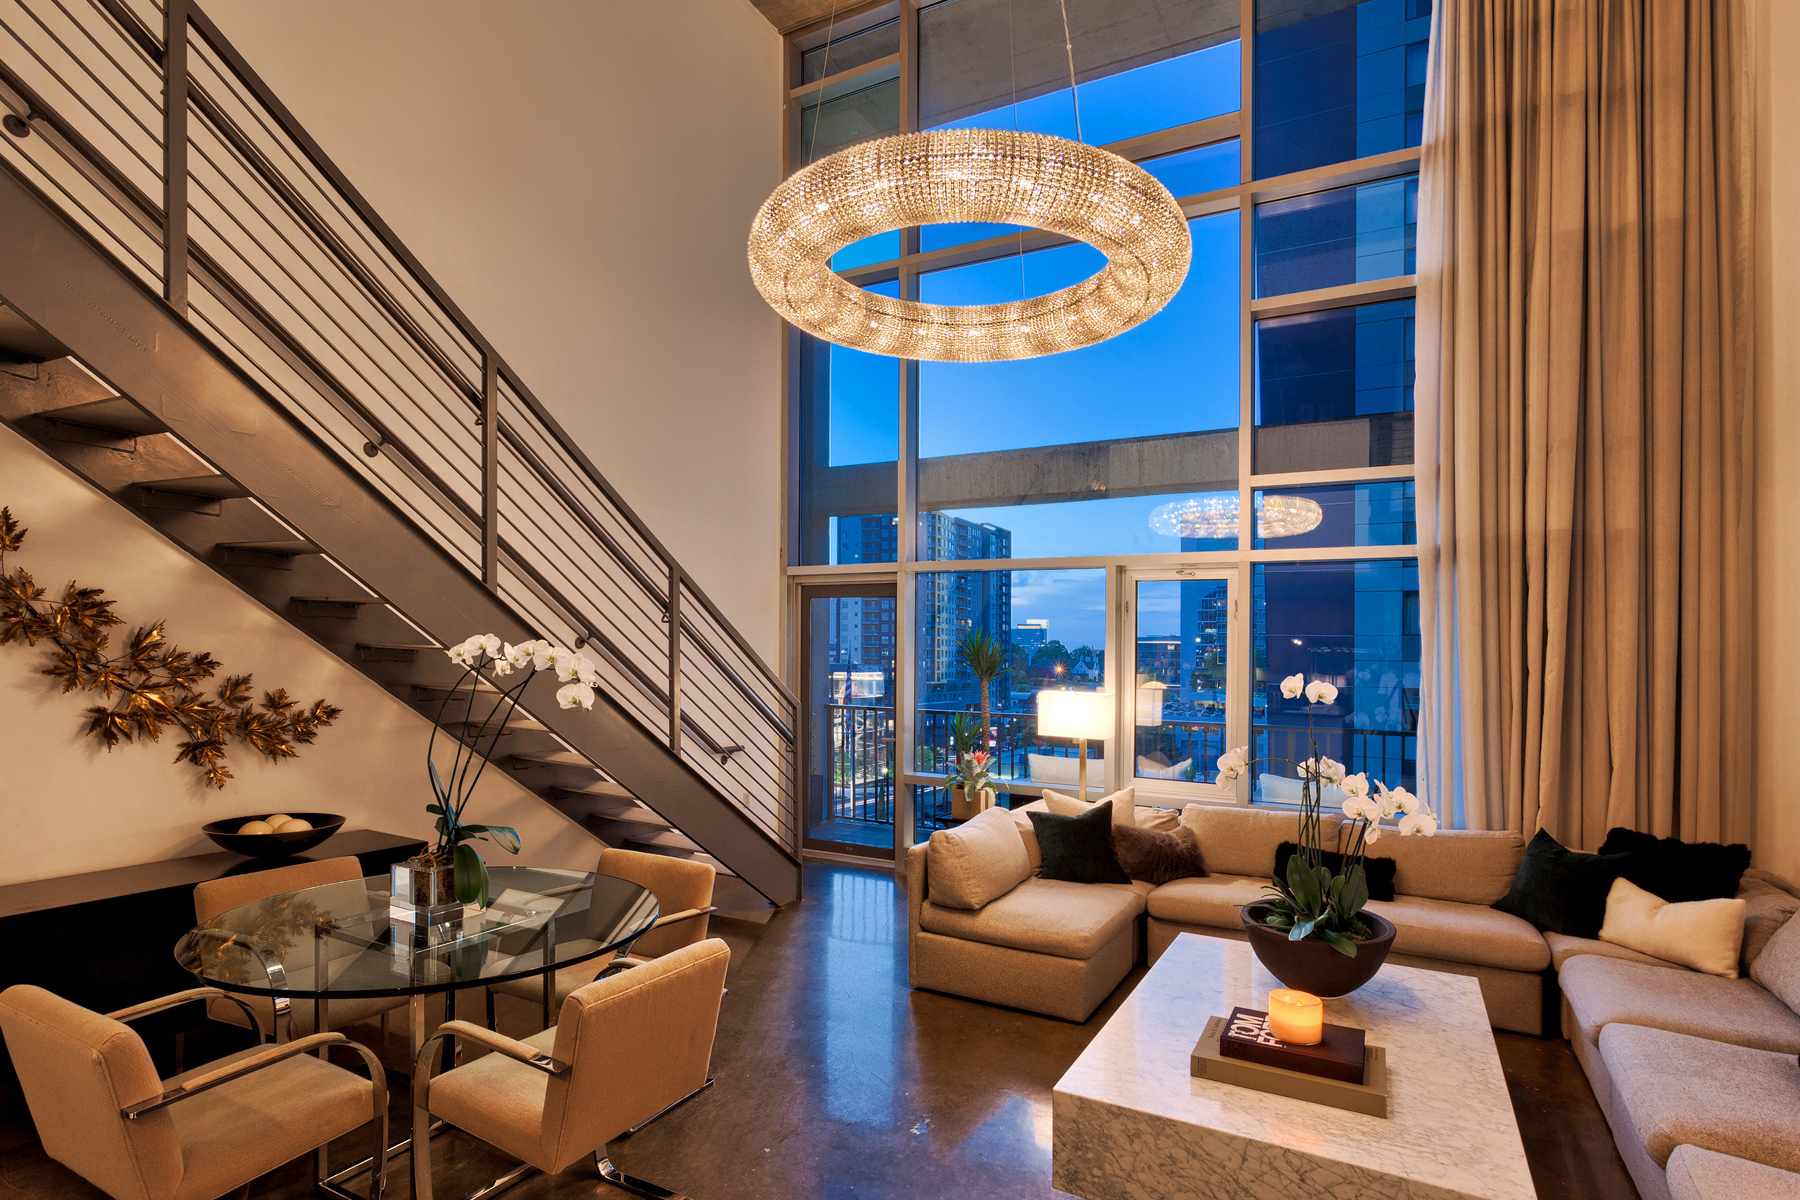 Condominium for Sale at Coveted Two-Story Mezzanine Unit In Midtown's Midcity Lofts 845 Spring St 317 Atlanta, Georgia 30308 United States